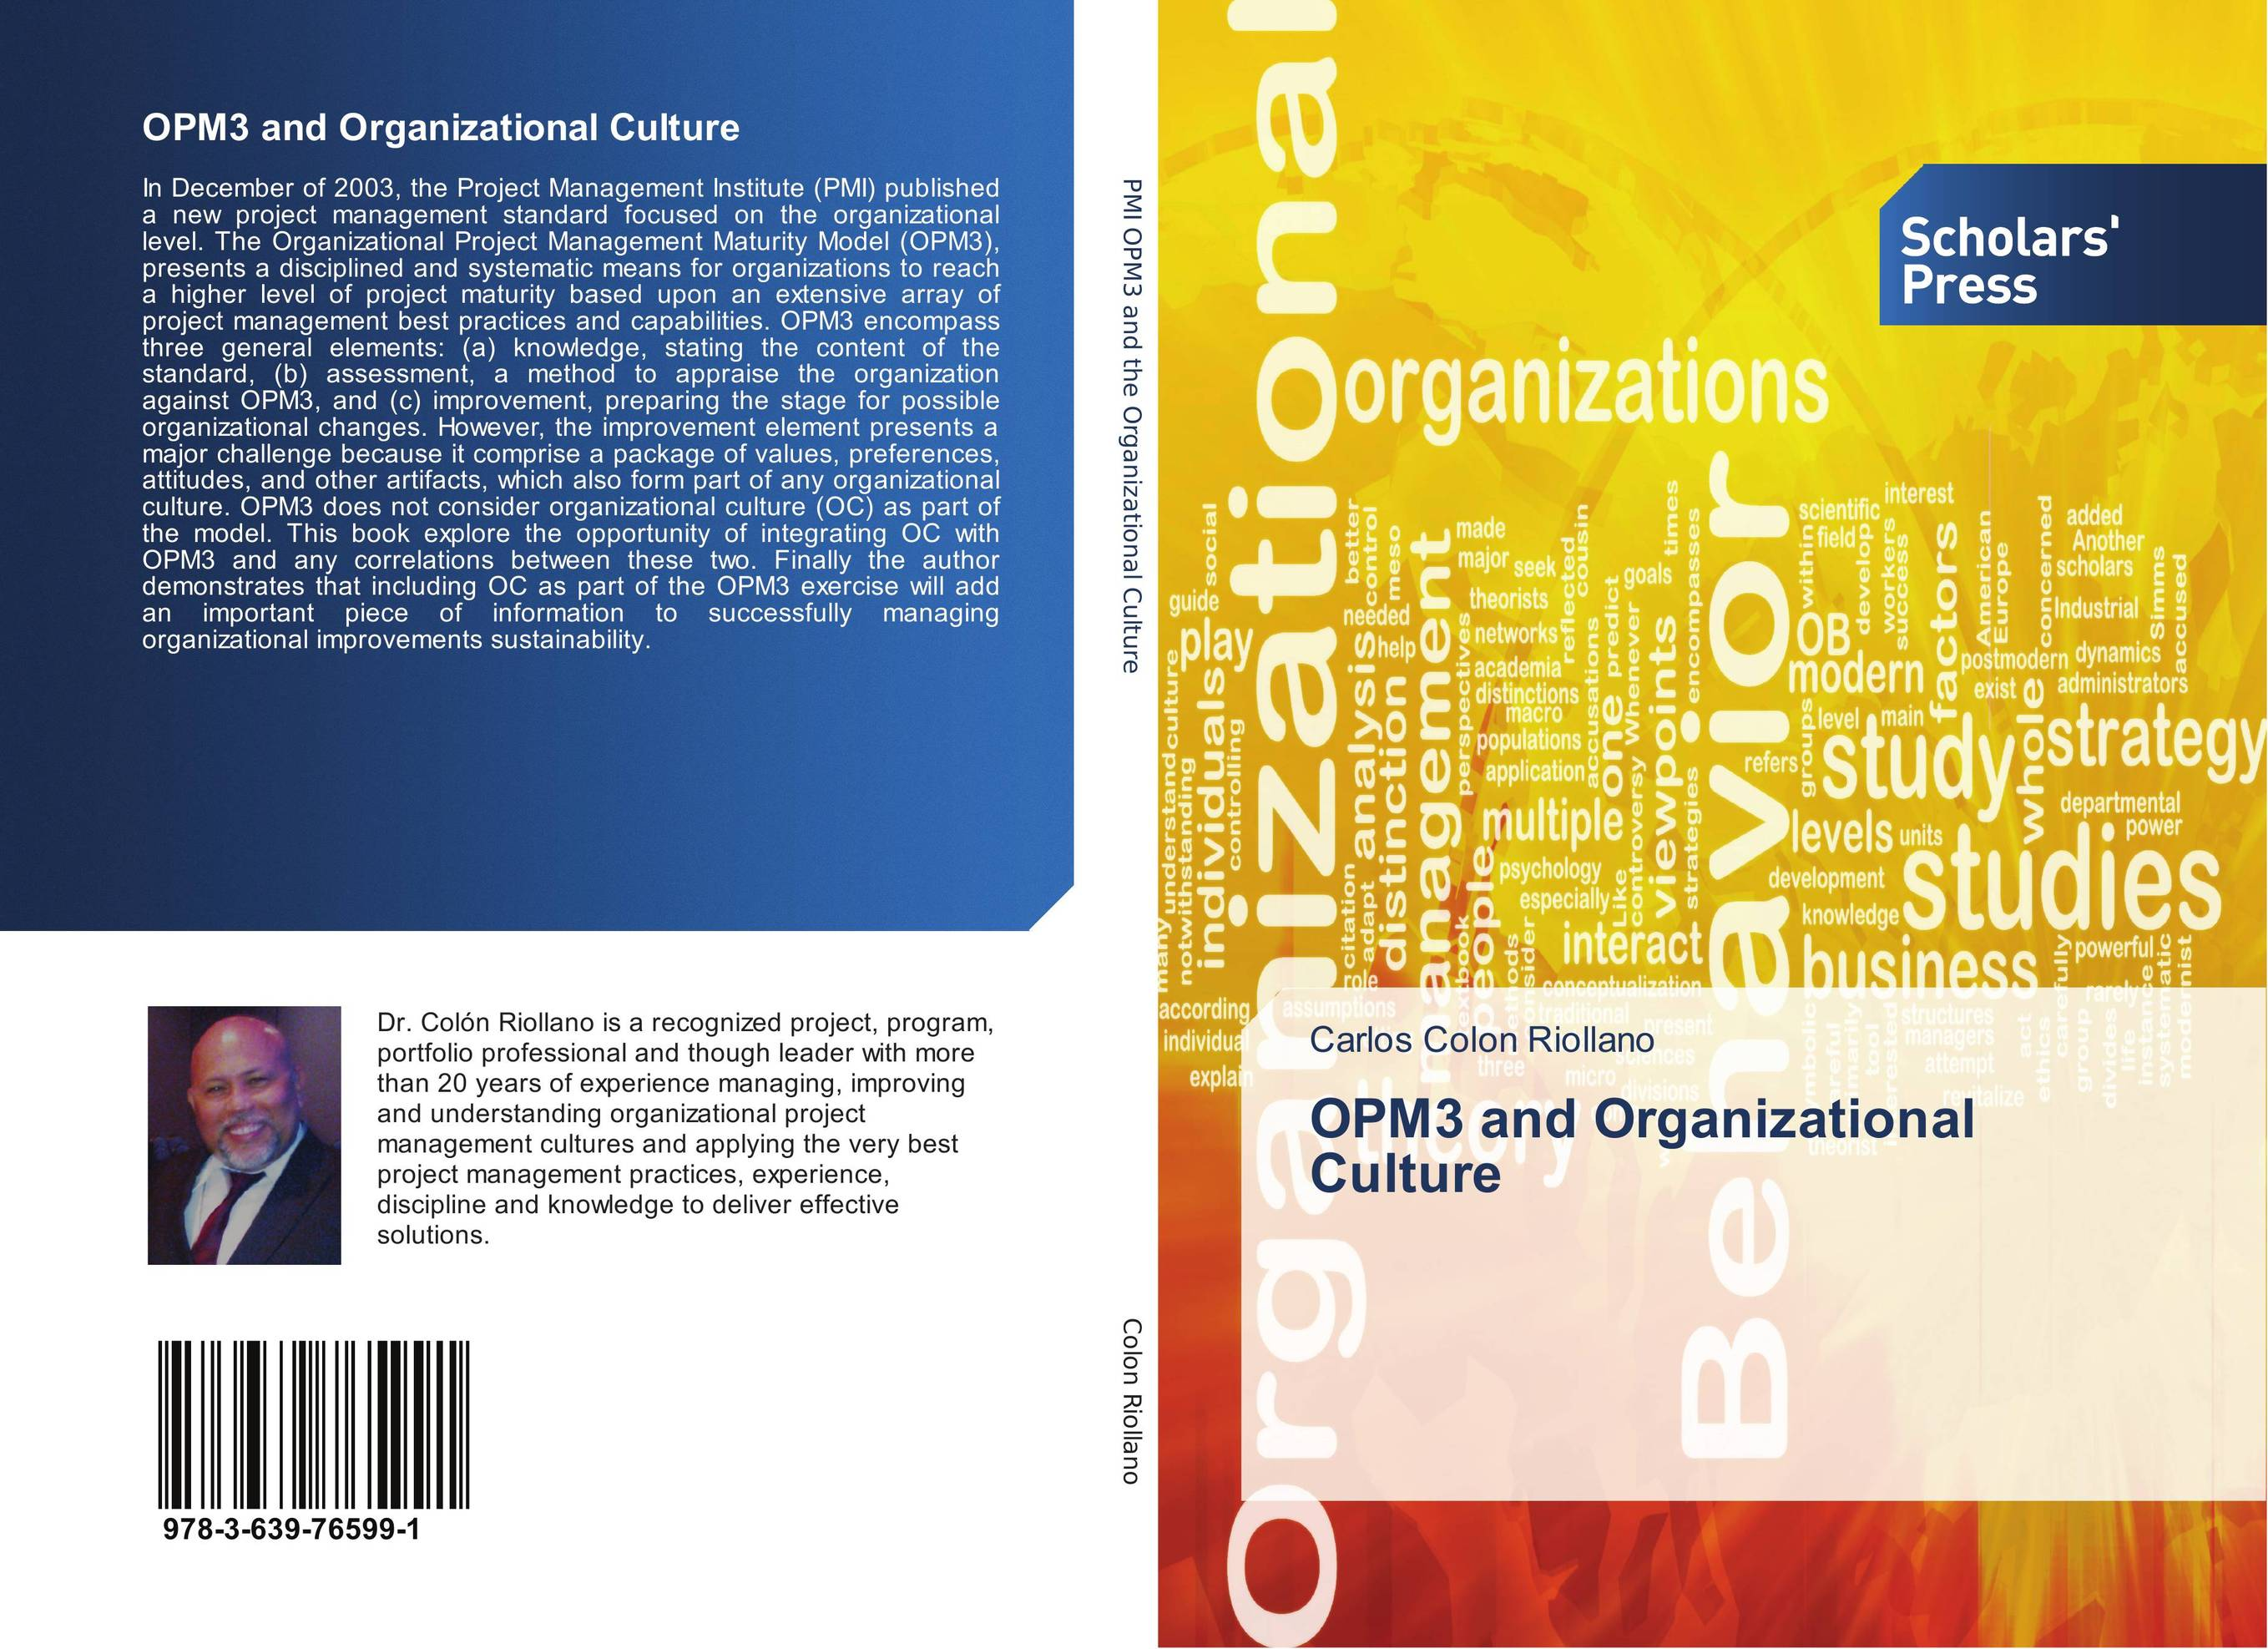 OPM3 and Organizational Culture